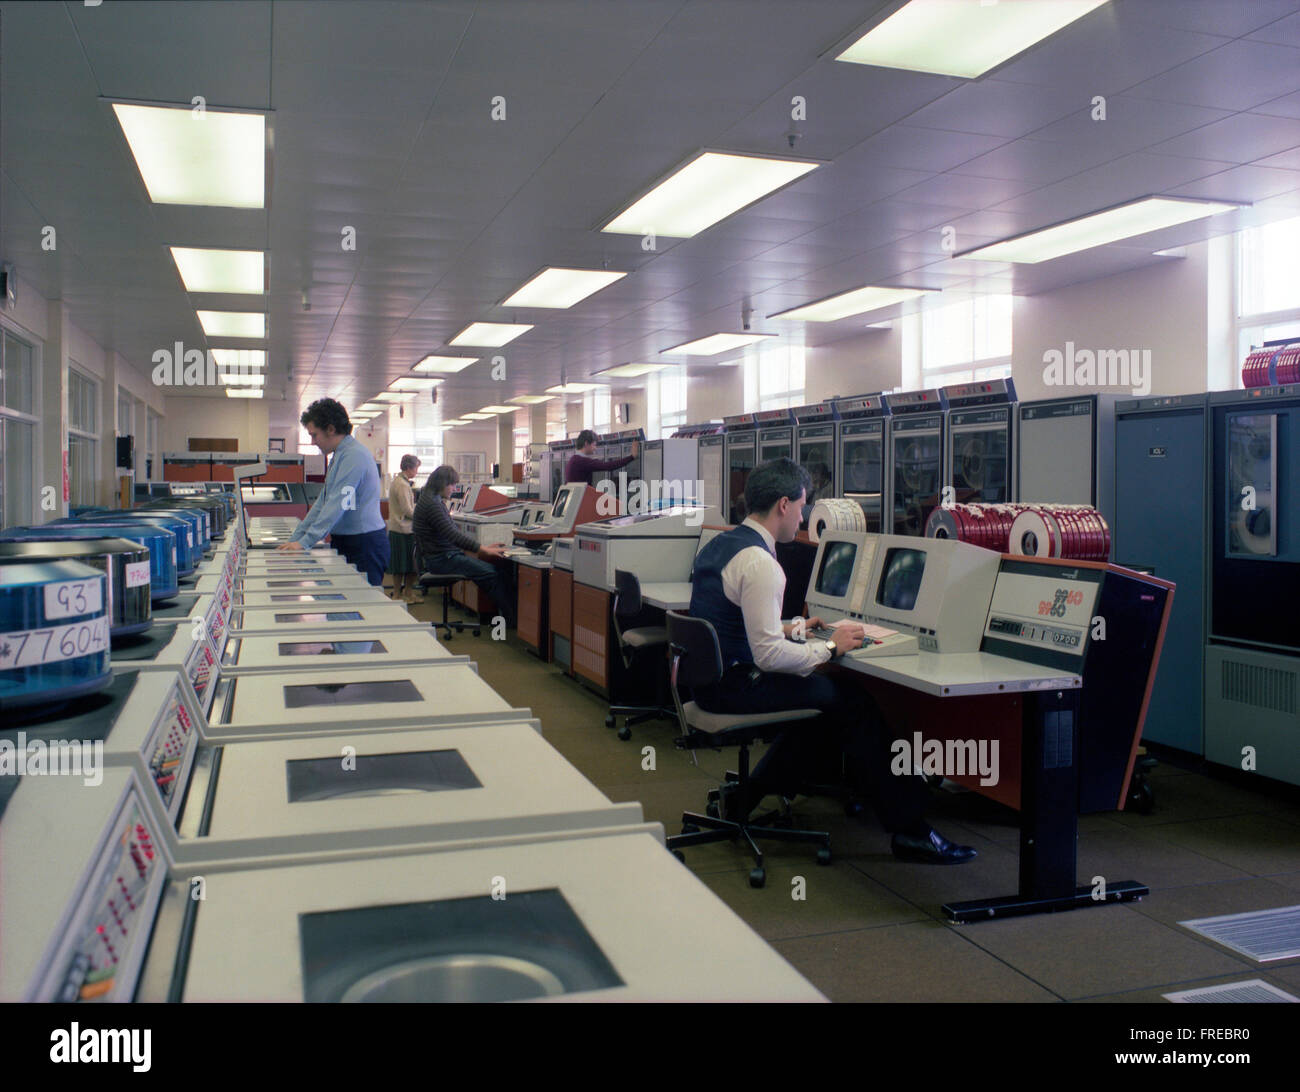 ICL 2960 mainframe computer system at the Milk Marketing Board, Thames Ditton c1985 - Stock Image